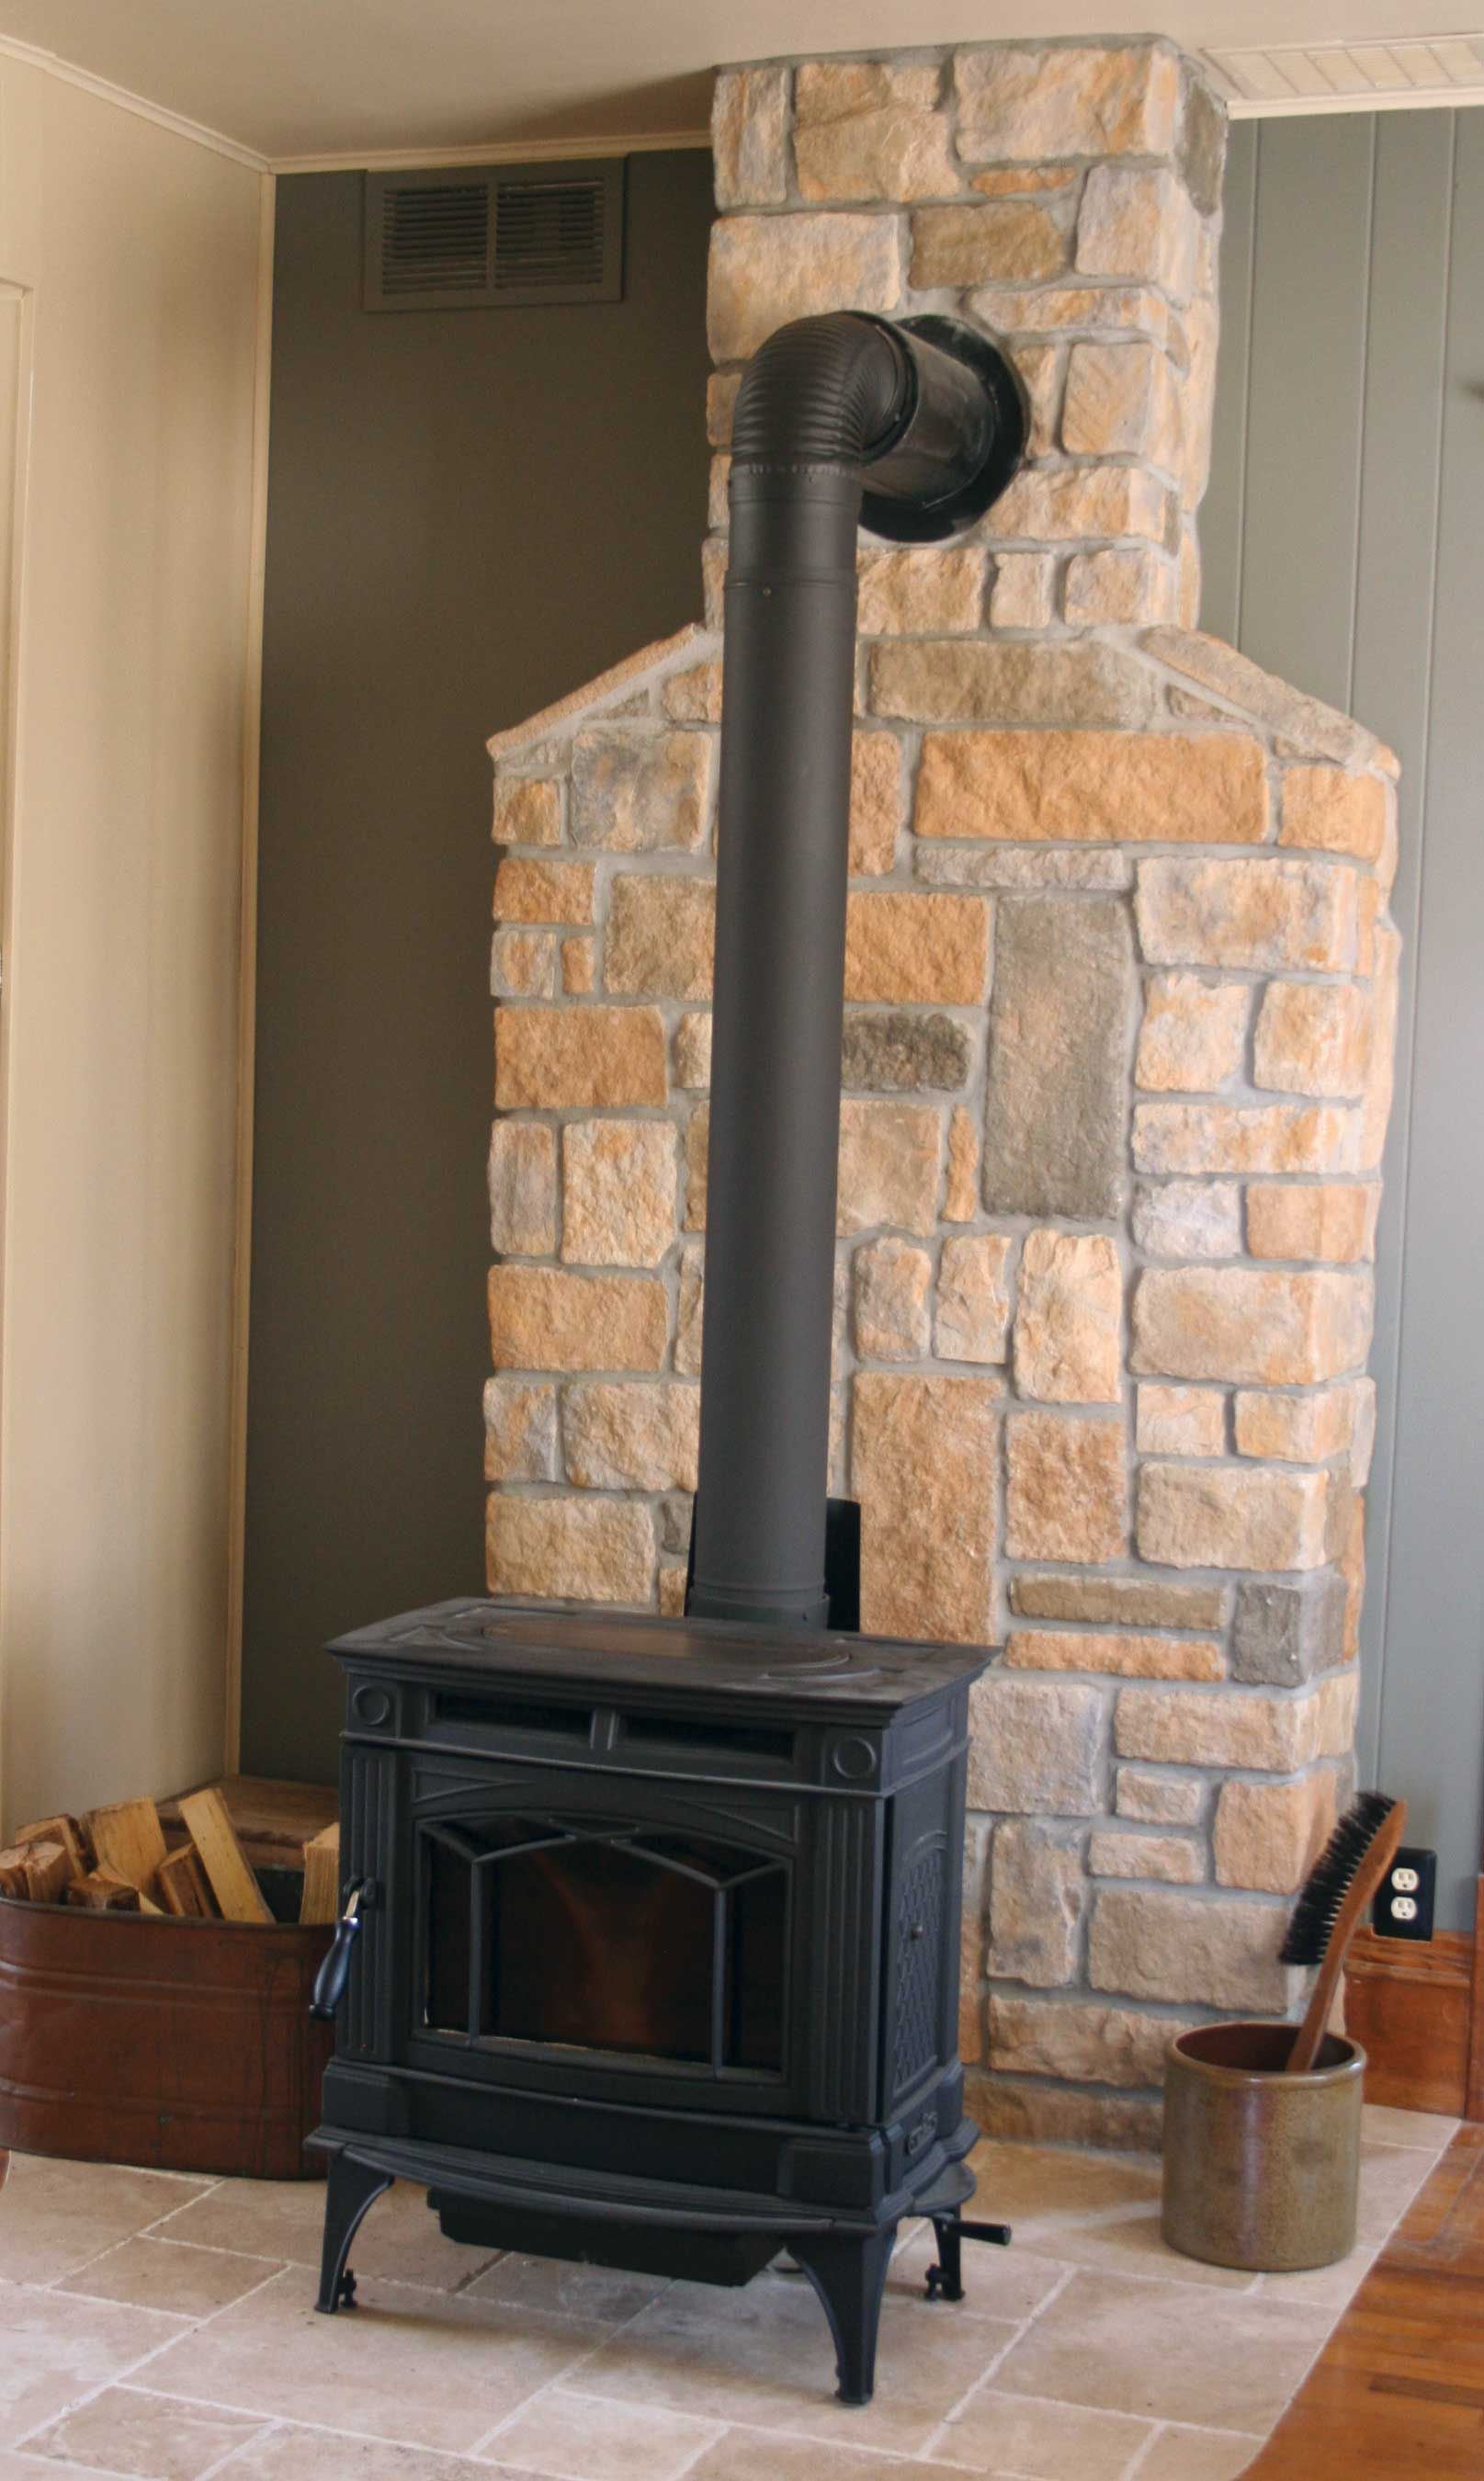 Choosing a wood burning stove for your home tools grit Wood burning stoves